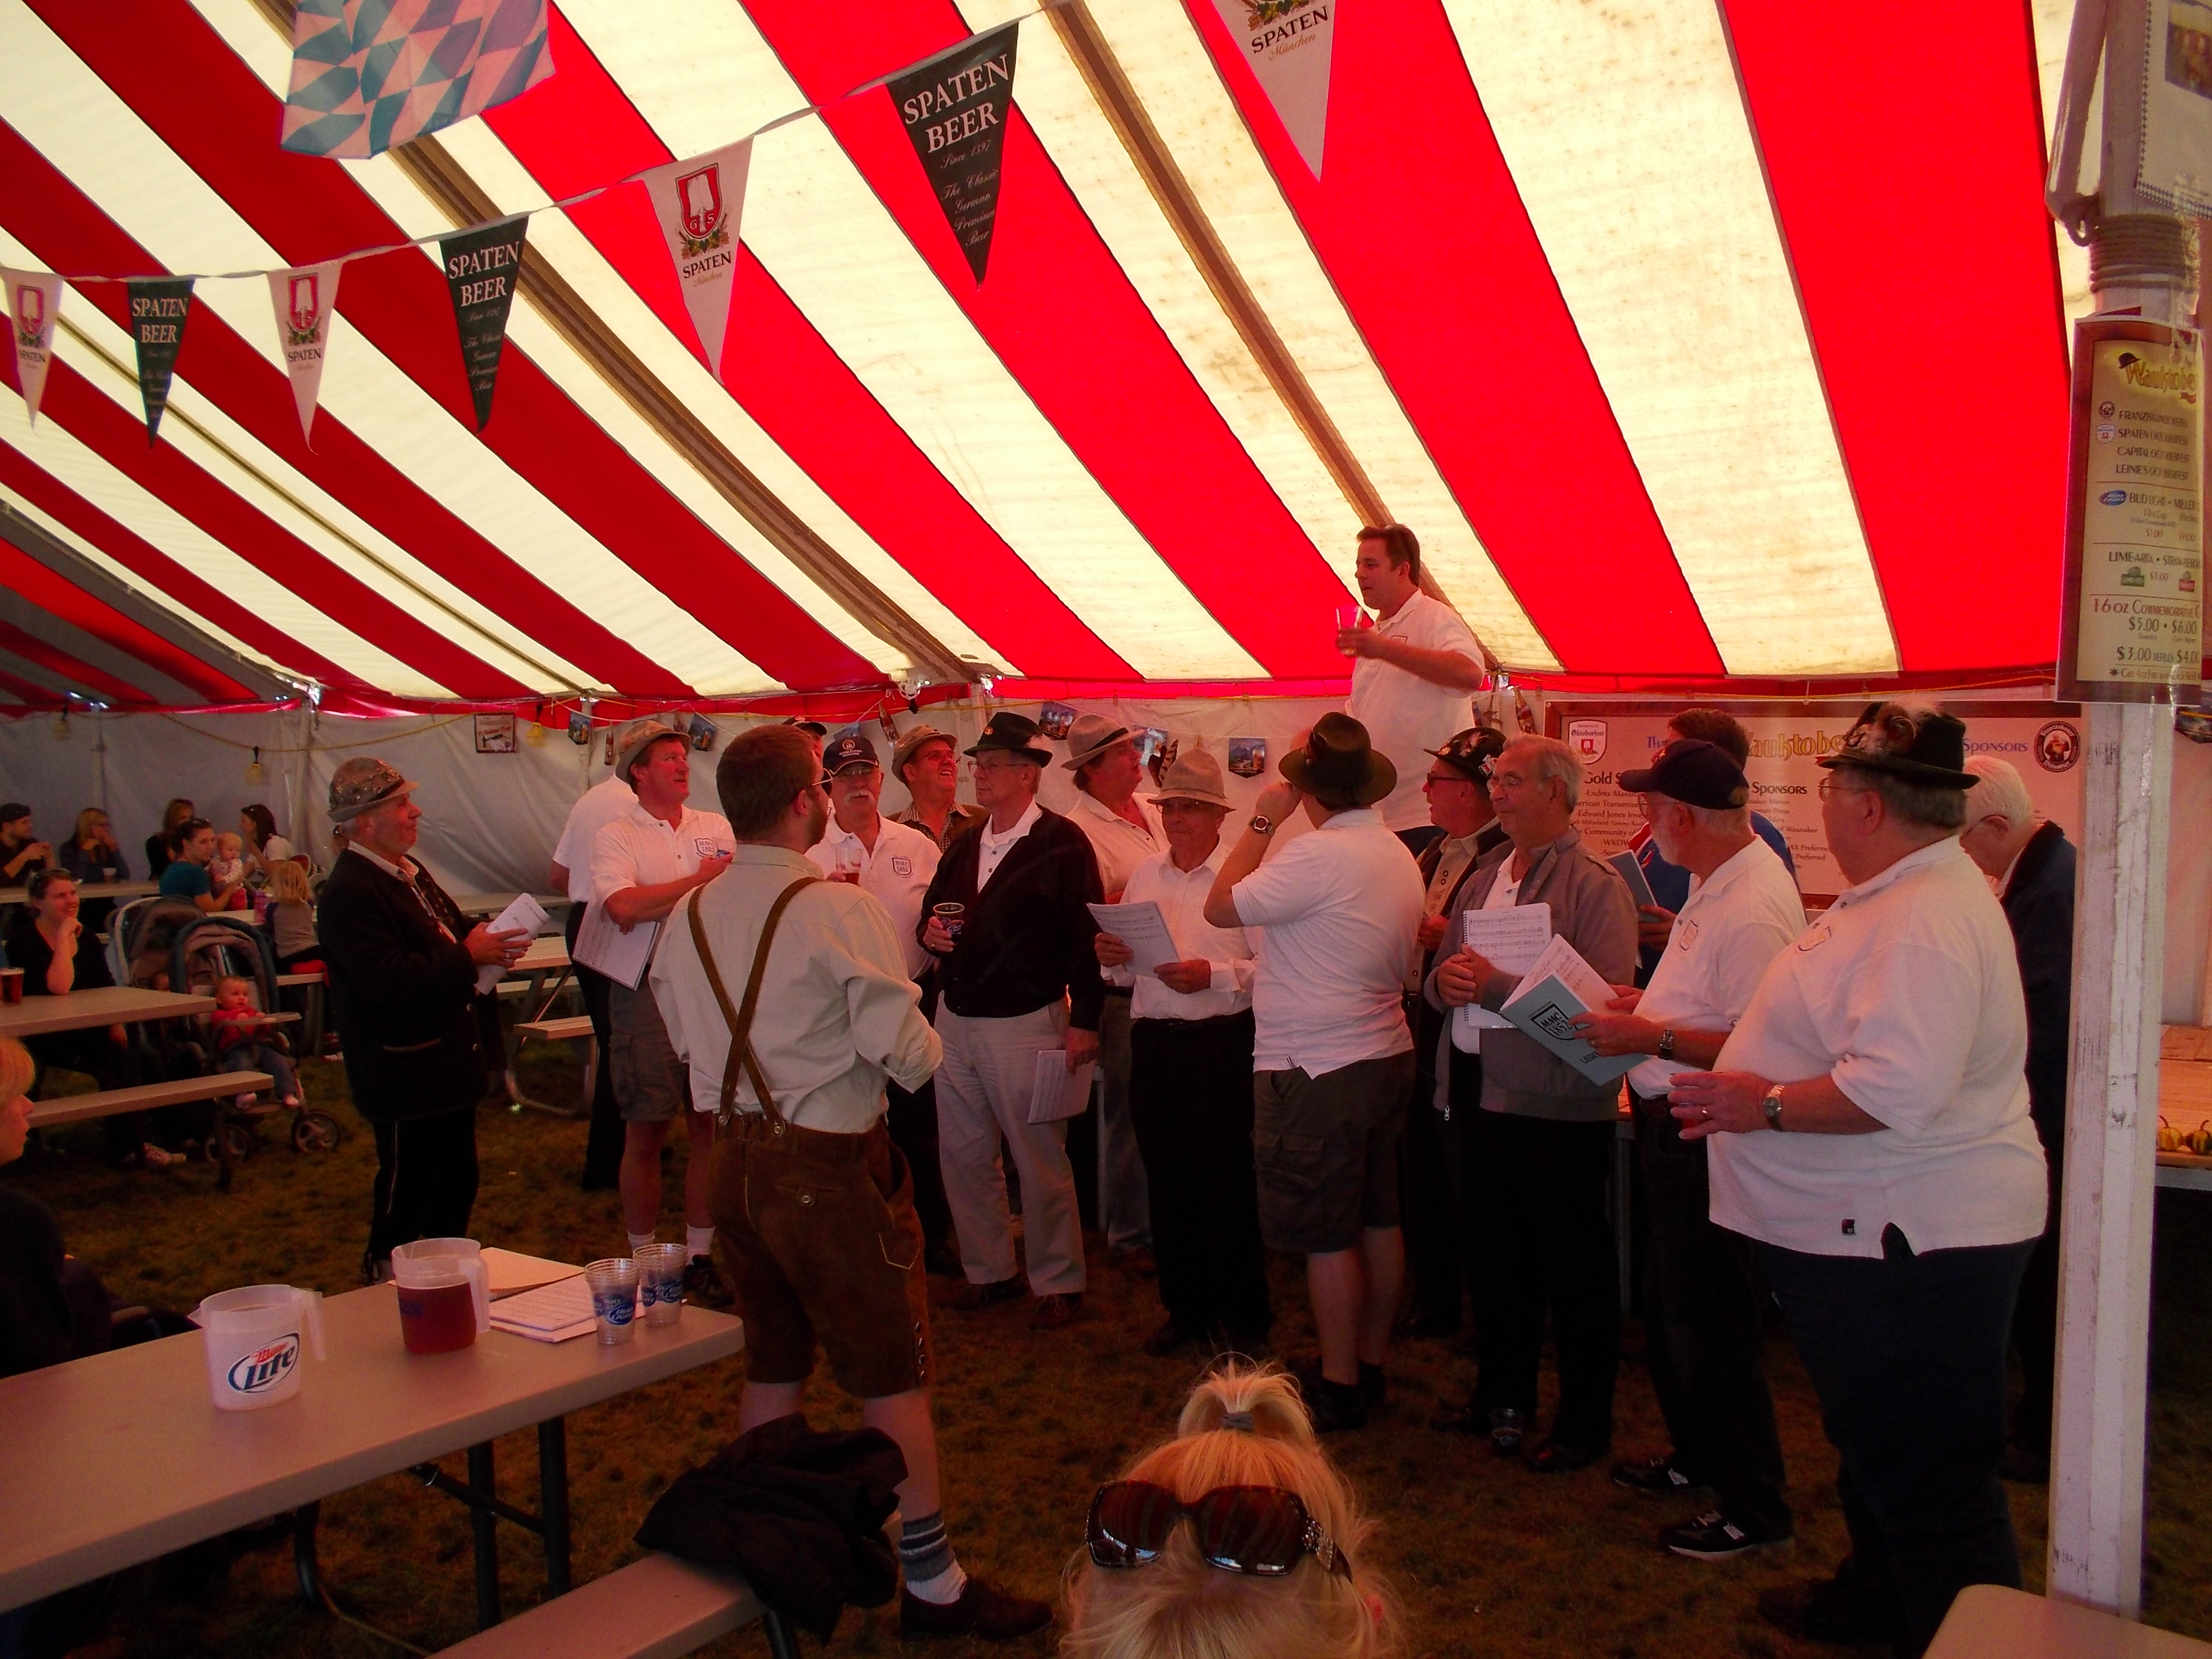 Getting ready to sing Ein Prosit during our second set